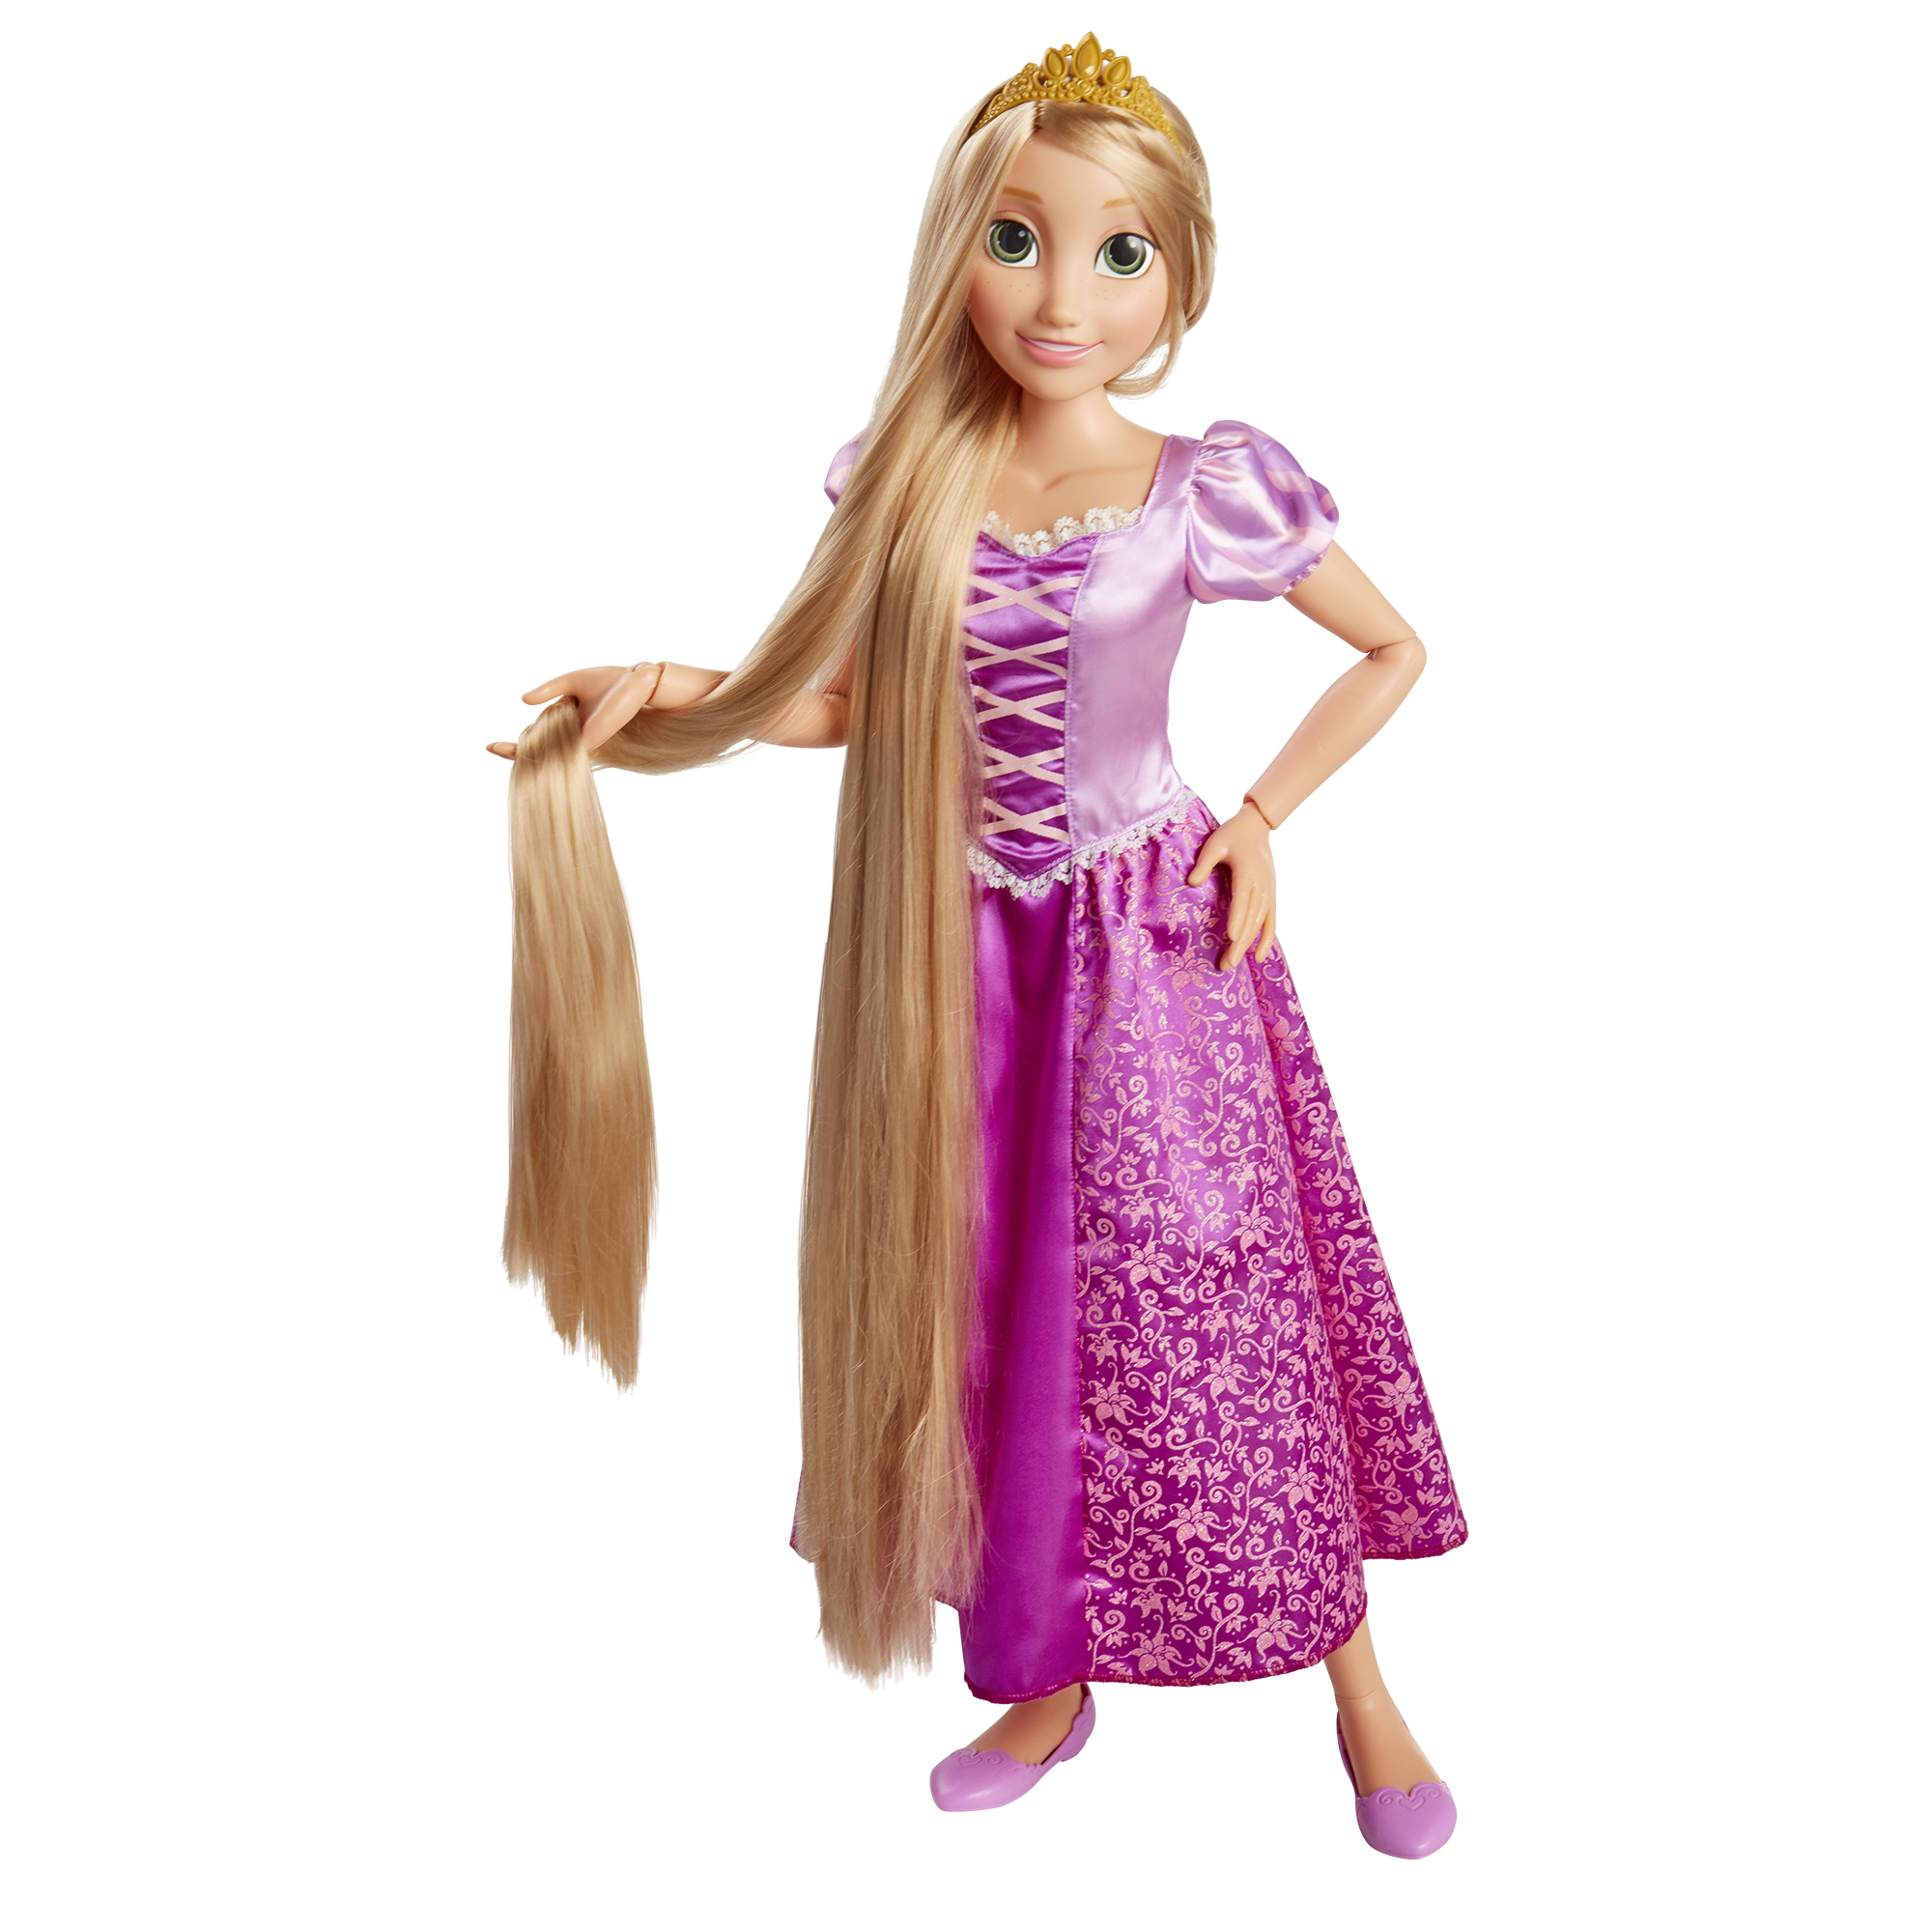 32 inch Playdate Rapunzel Doll Disney Princess